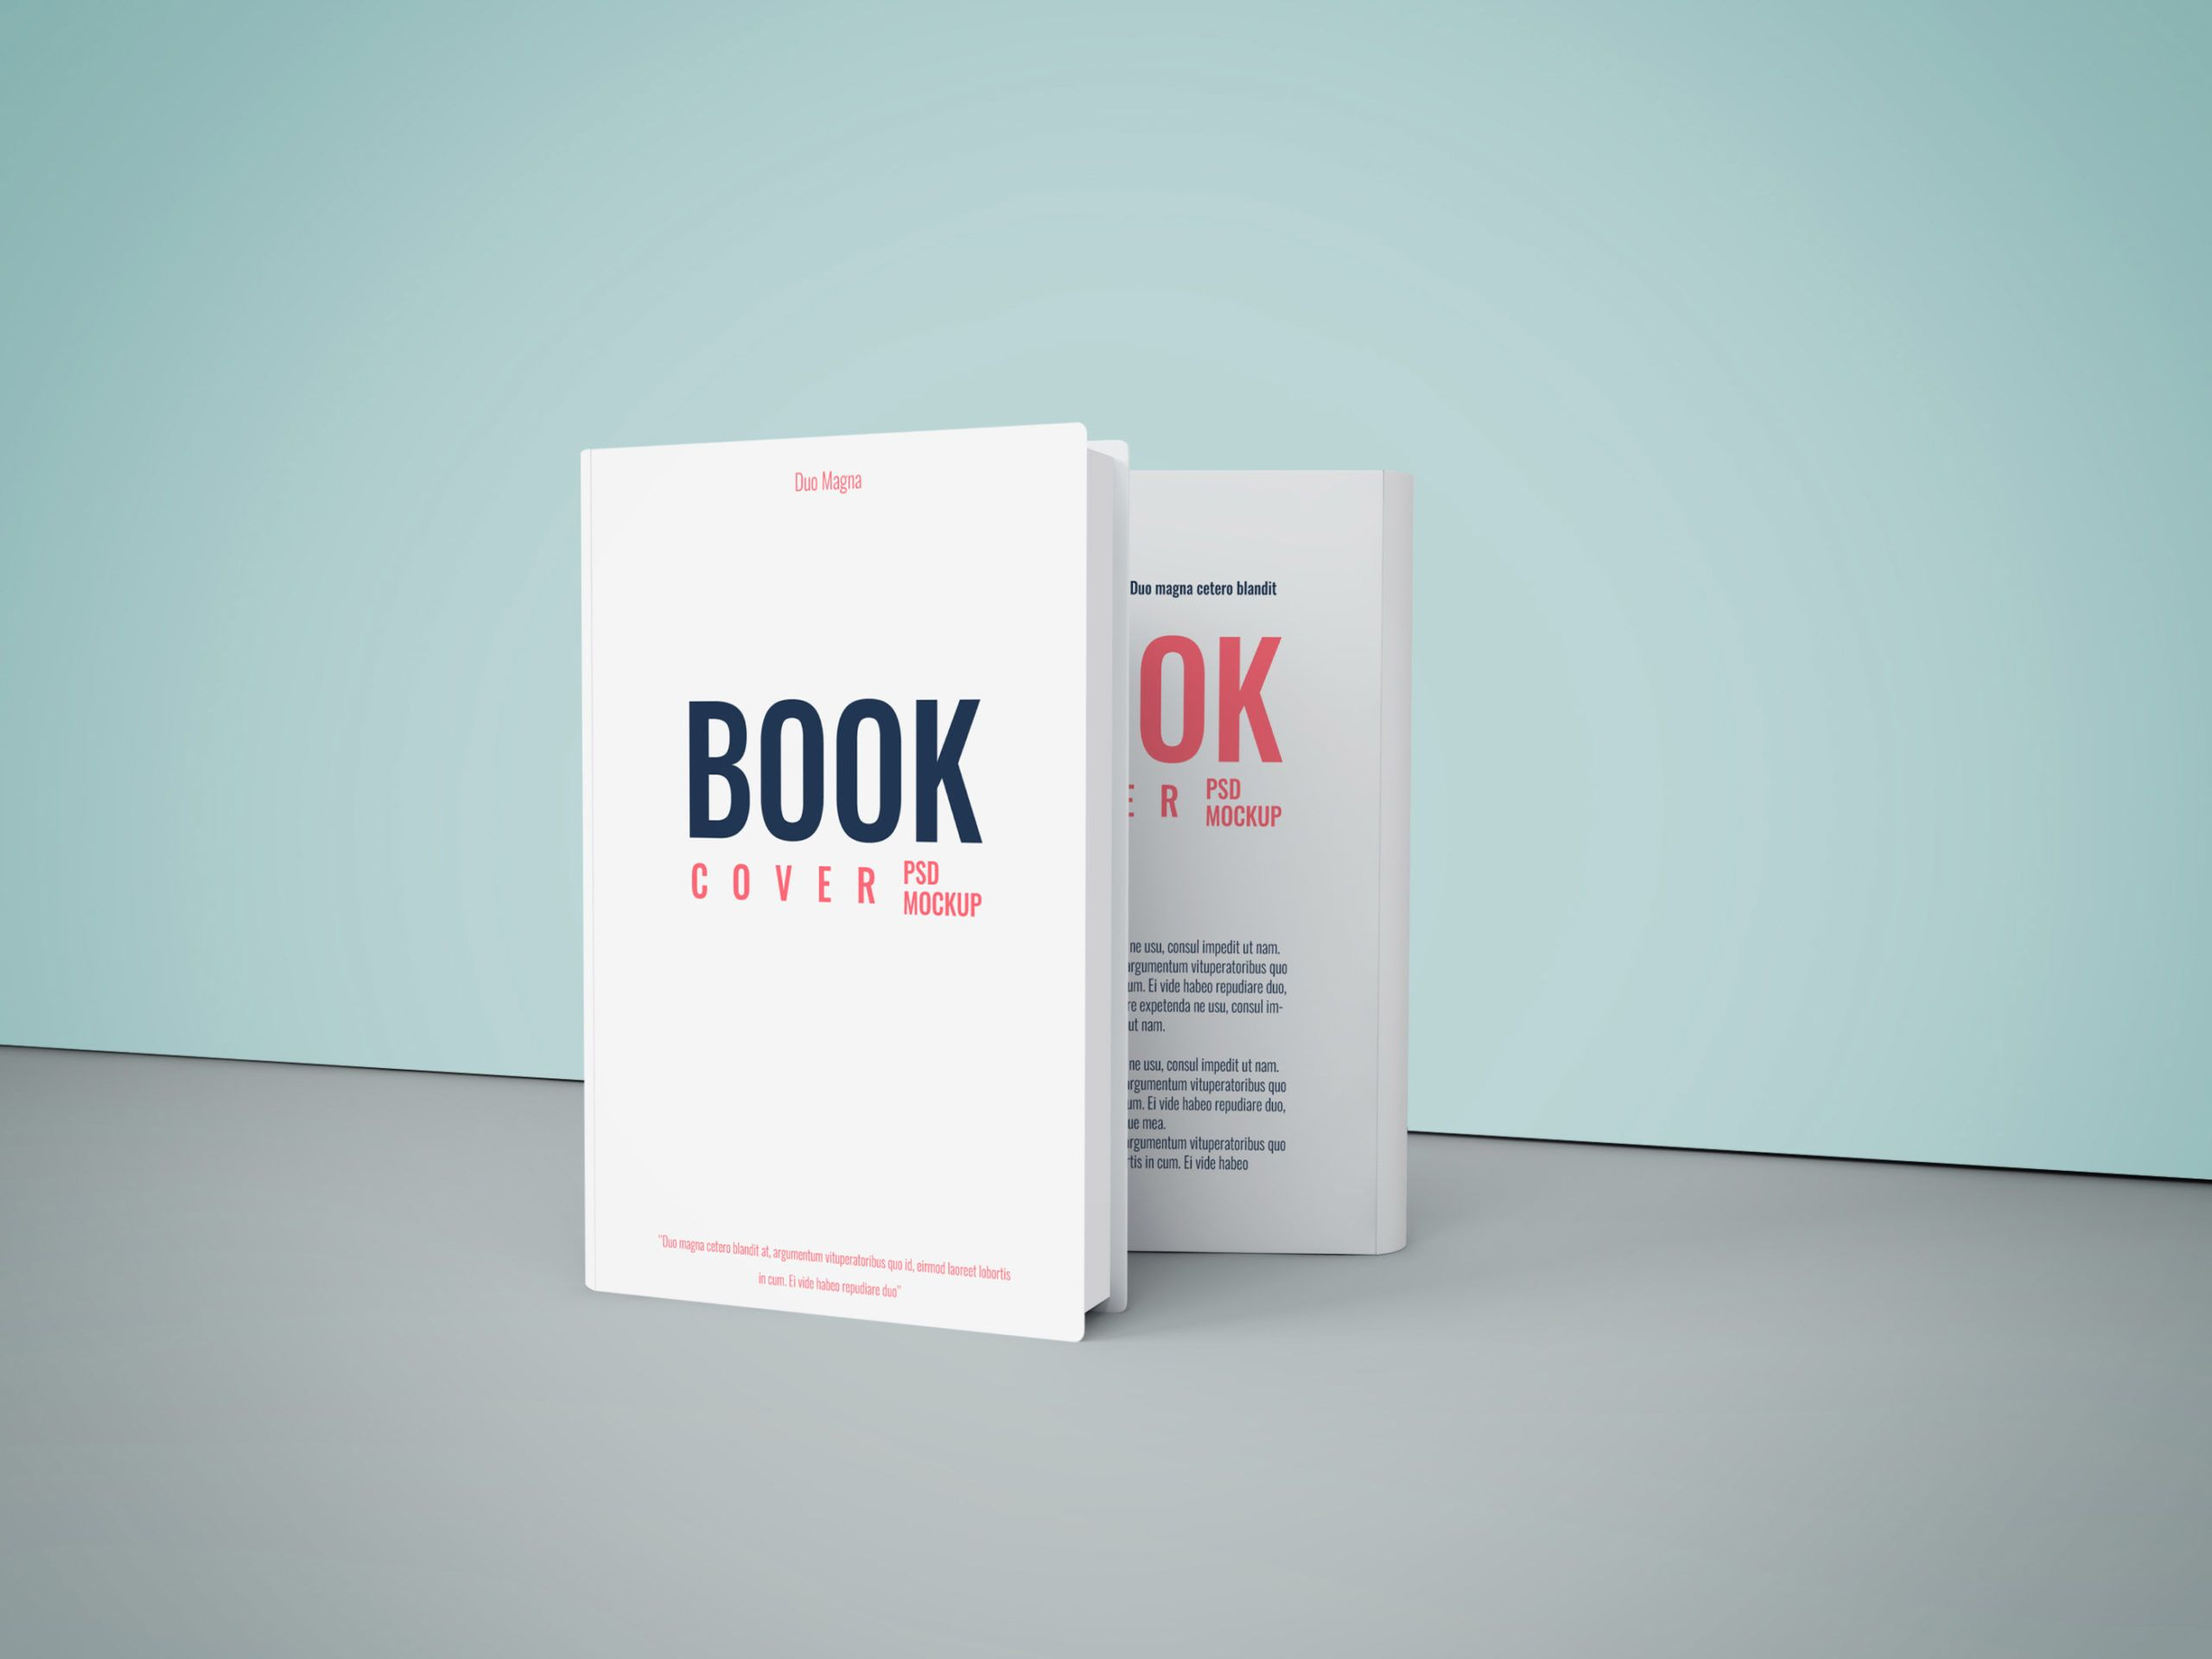 Standing Book Cover Psd Mockup Free Download Book Cover Mockup Book Cover Design Template Book Cover Mockup Free